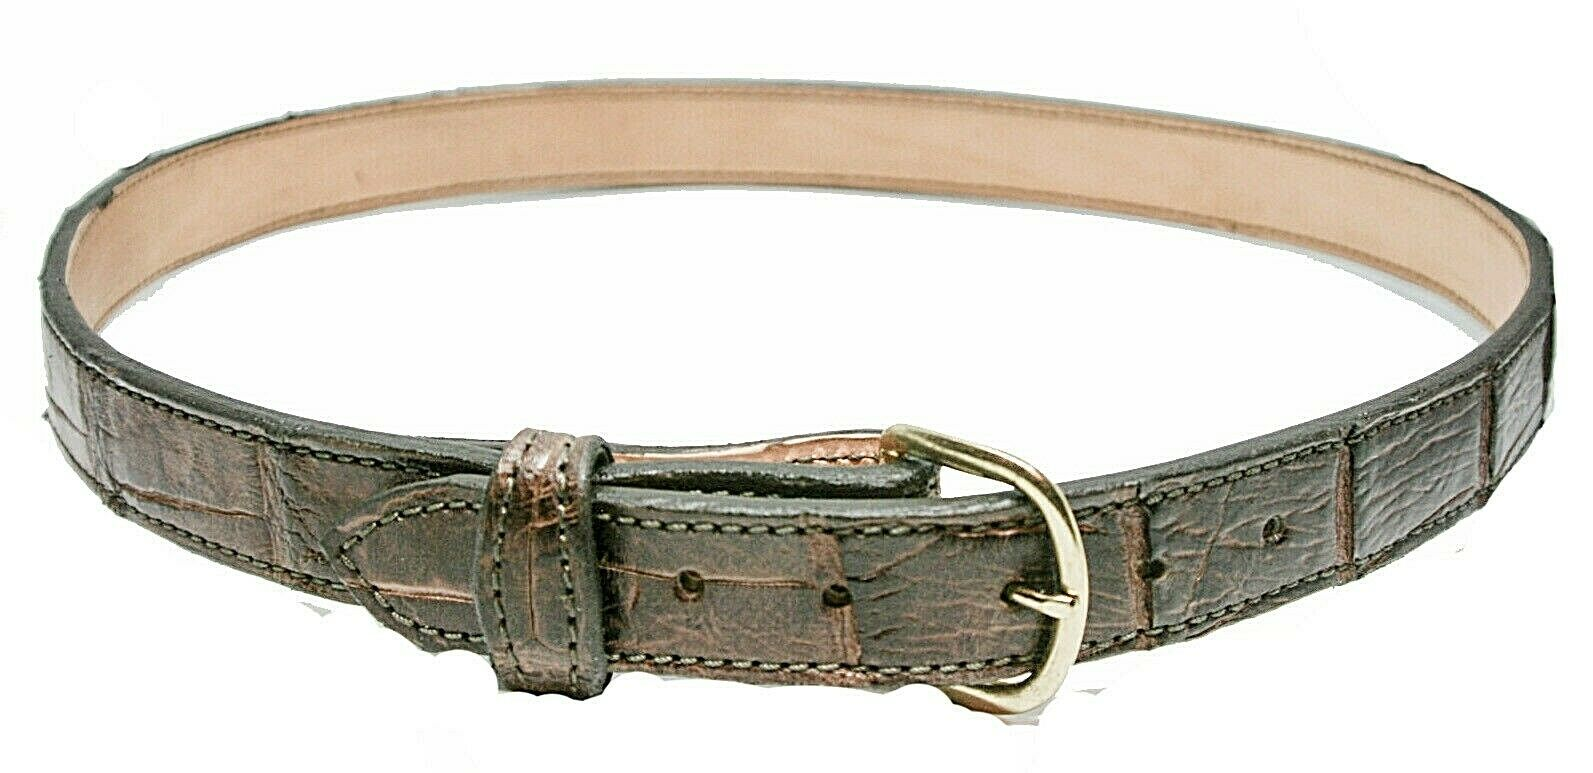 Alligator Belt, Real Florida Alligator 11/4 and 1 1/2 from 3